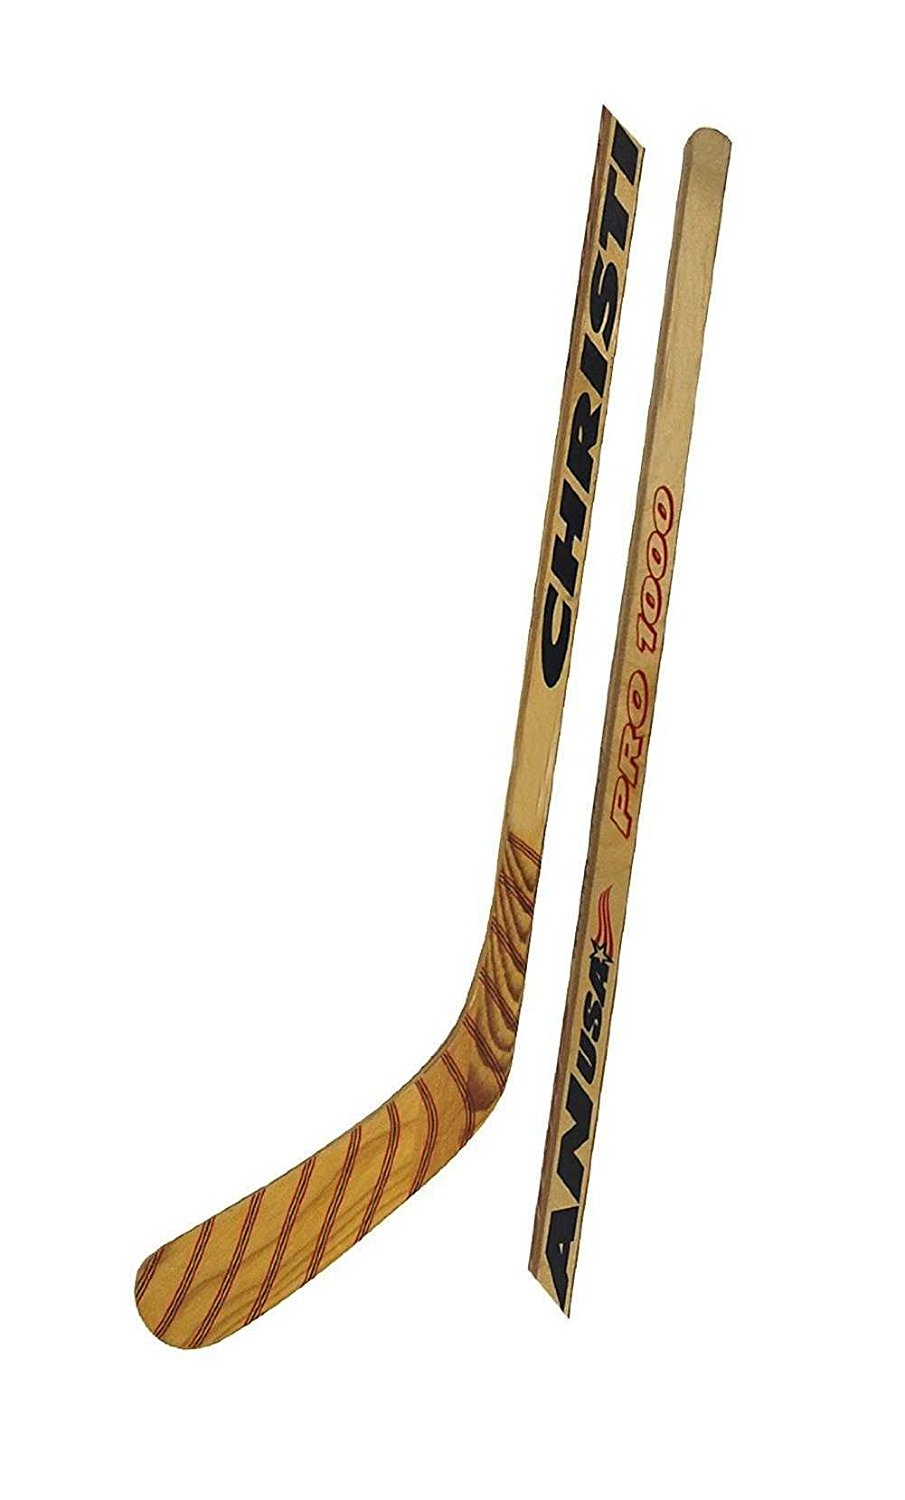 Christian Pro 1000 Wood Ice Hockey Stick: (Junior Stick, Left Curve), Features Wooden Handle & Blade By Christian Hockey by